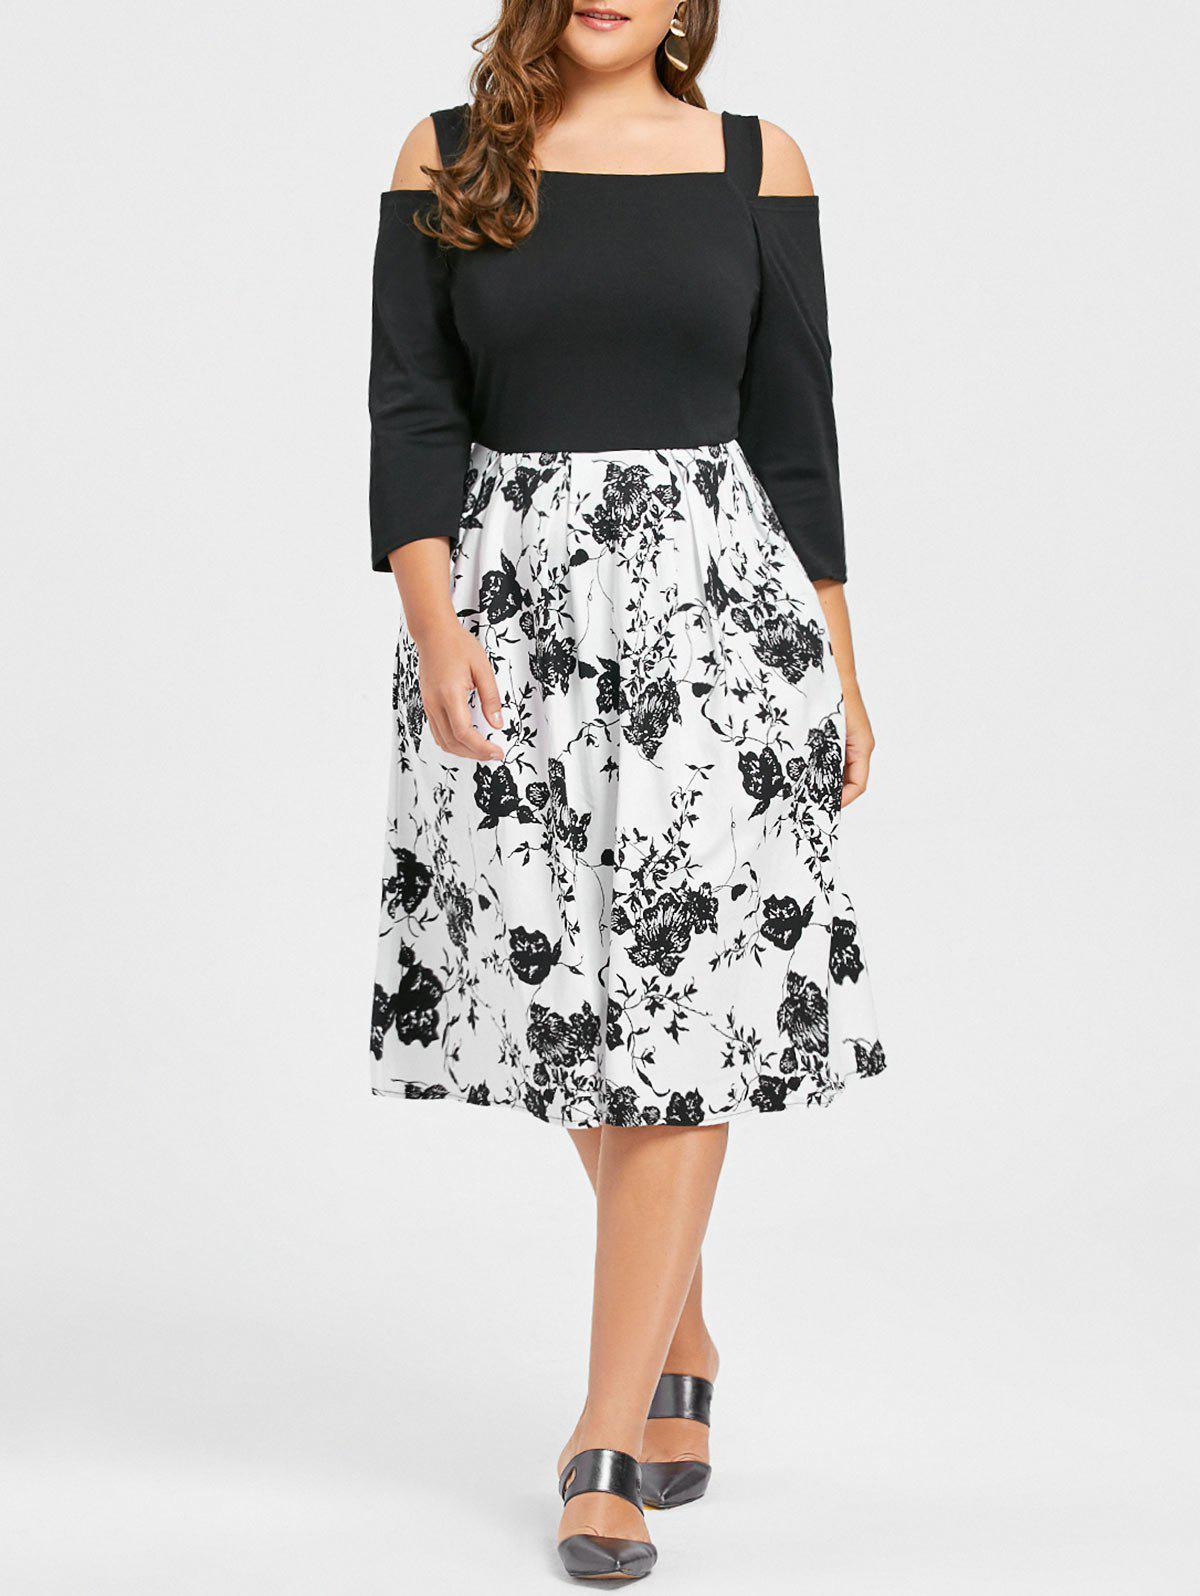 Plus Size Floral Print Cold Shoulder DressWOMEN<br><br>Size: 2XL; Color: BLACK; Style: Casual; Material: Cotton,Polyester; Silhouette: A-Line; Dresses Length: Knee-Length; Neckline: Square Collar; Sleeve Type: Cold Shoulder; Sleeve Length: 3/4 Length Sleeves; Pattern Type: Floral; With Belt: No; Season: Fall,Spring; Weight: 0.4850kg; Package Contents: 1 x Dress;